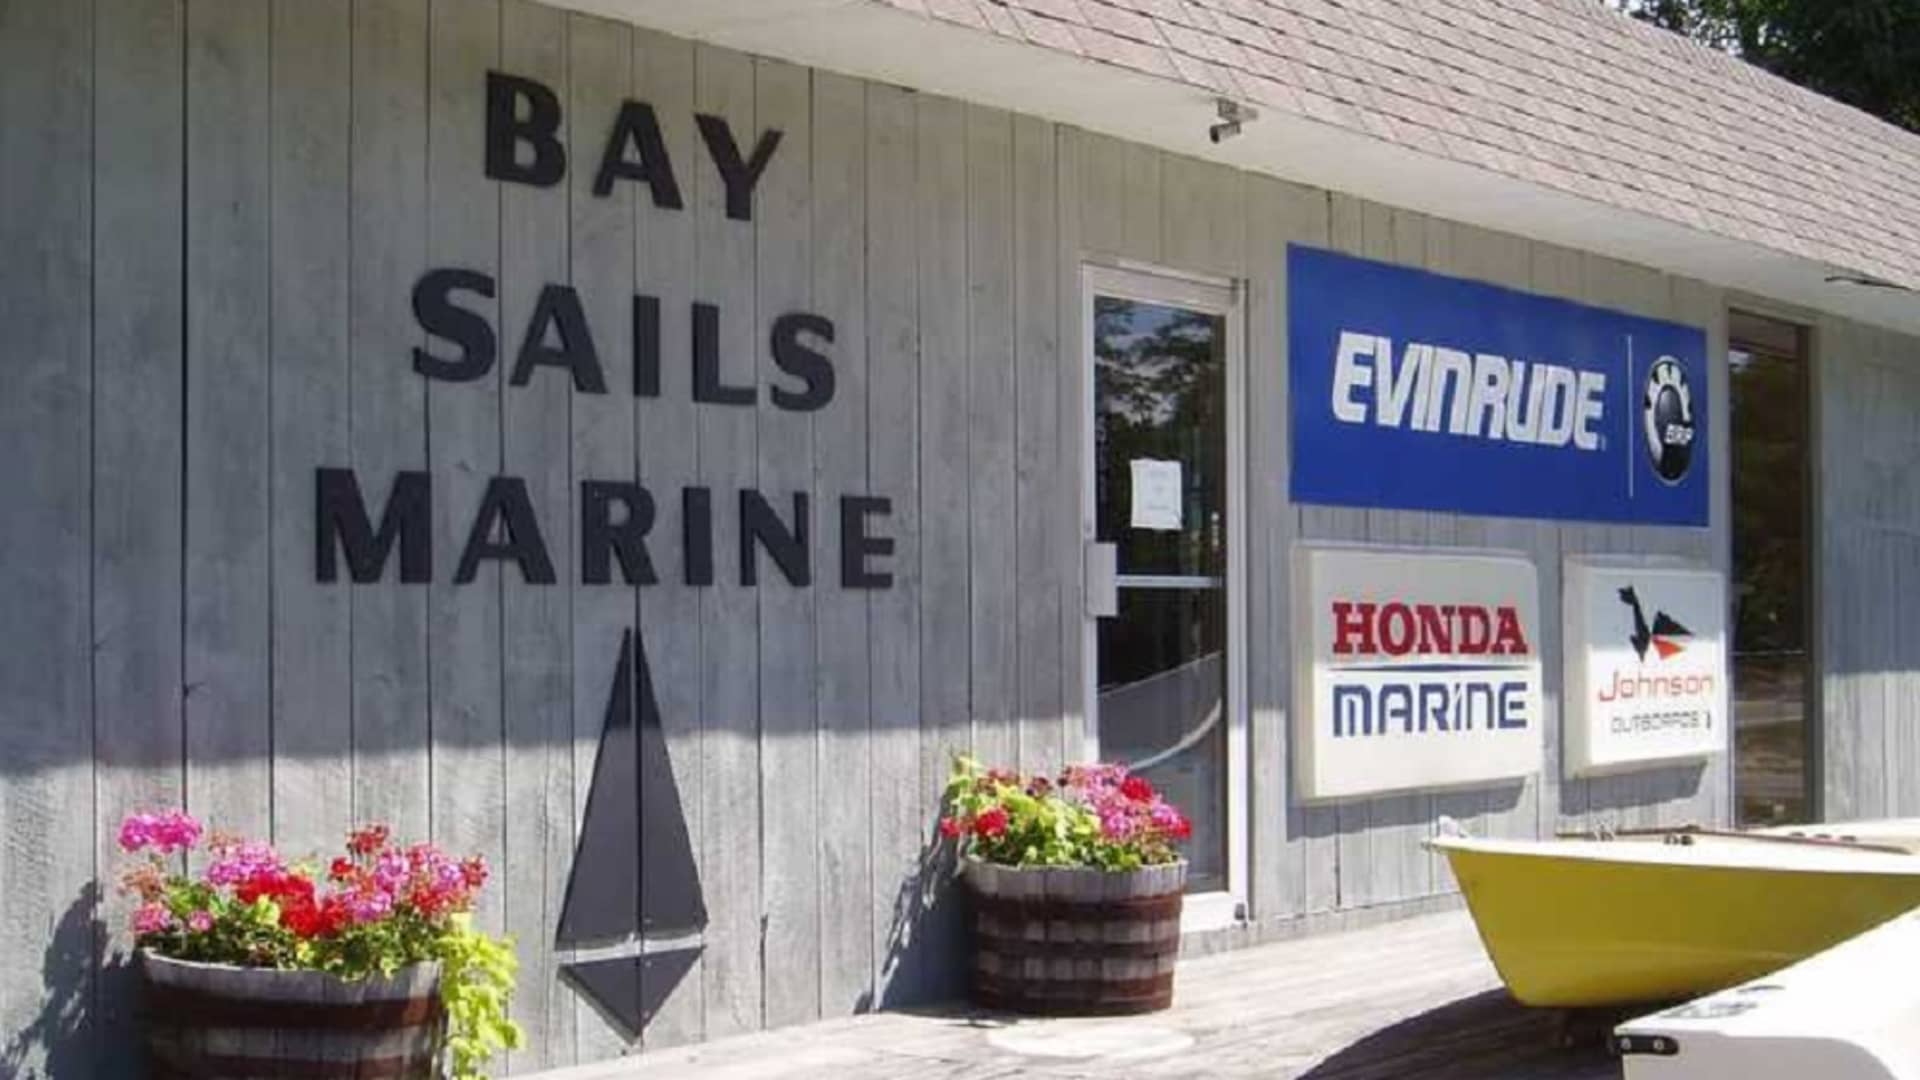 Lyle Butts has run Bay Sails Marine in Wellfleet, MA since 1970.